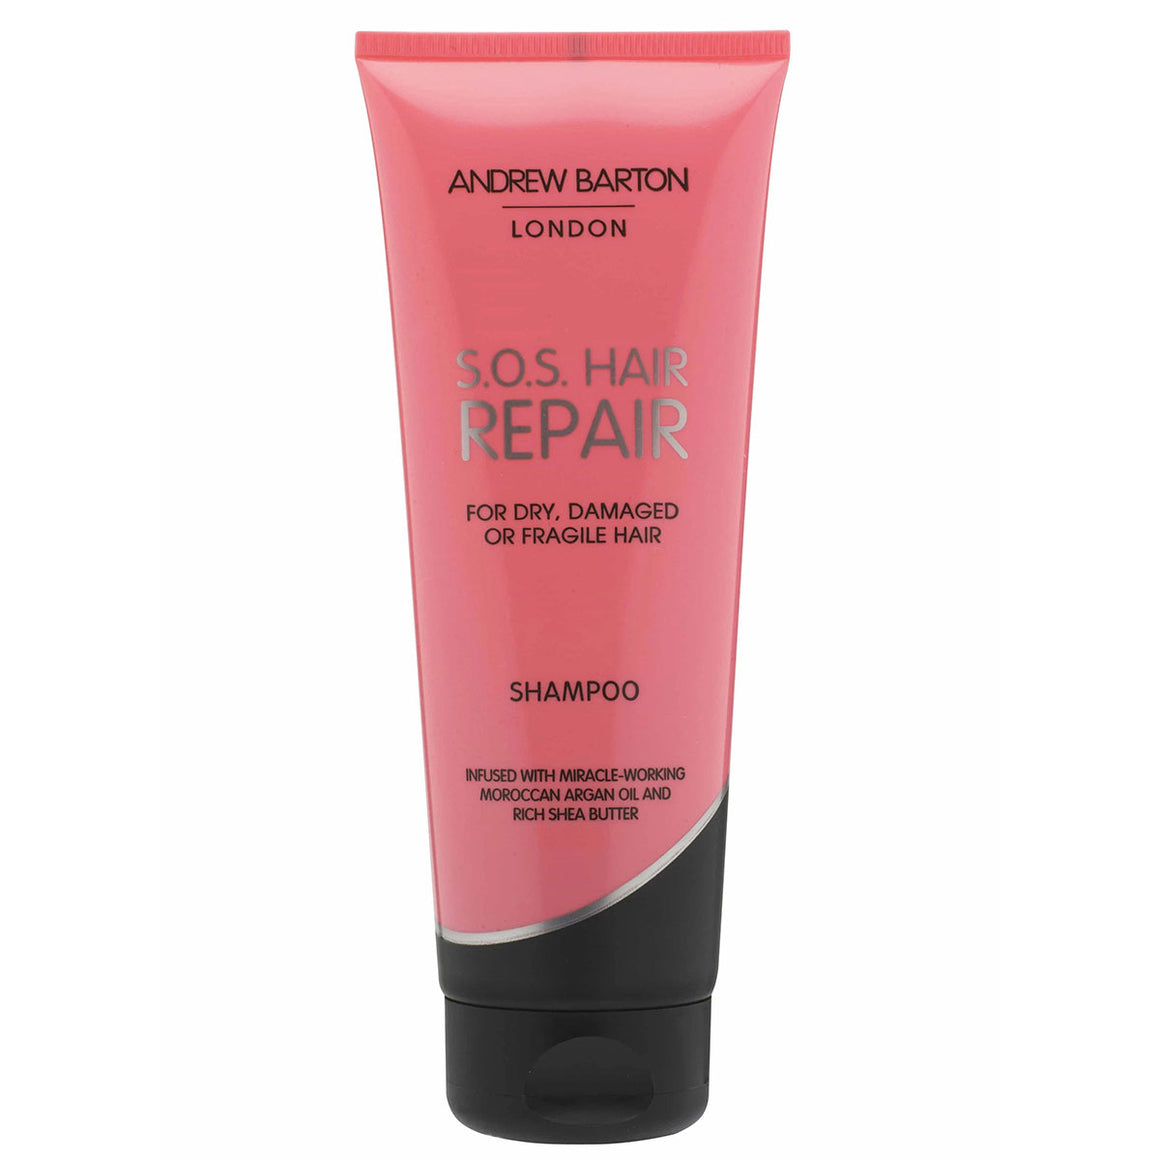 Andrew Barton S.O.S Hair Repair Shampoo 250ml at BD Budget Beauty (BBB)